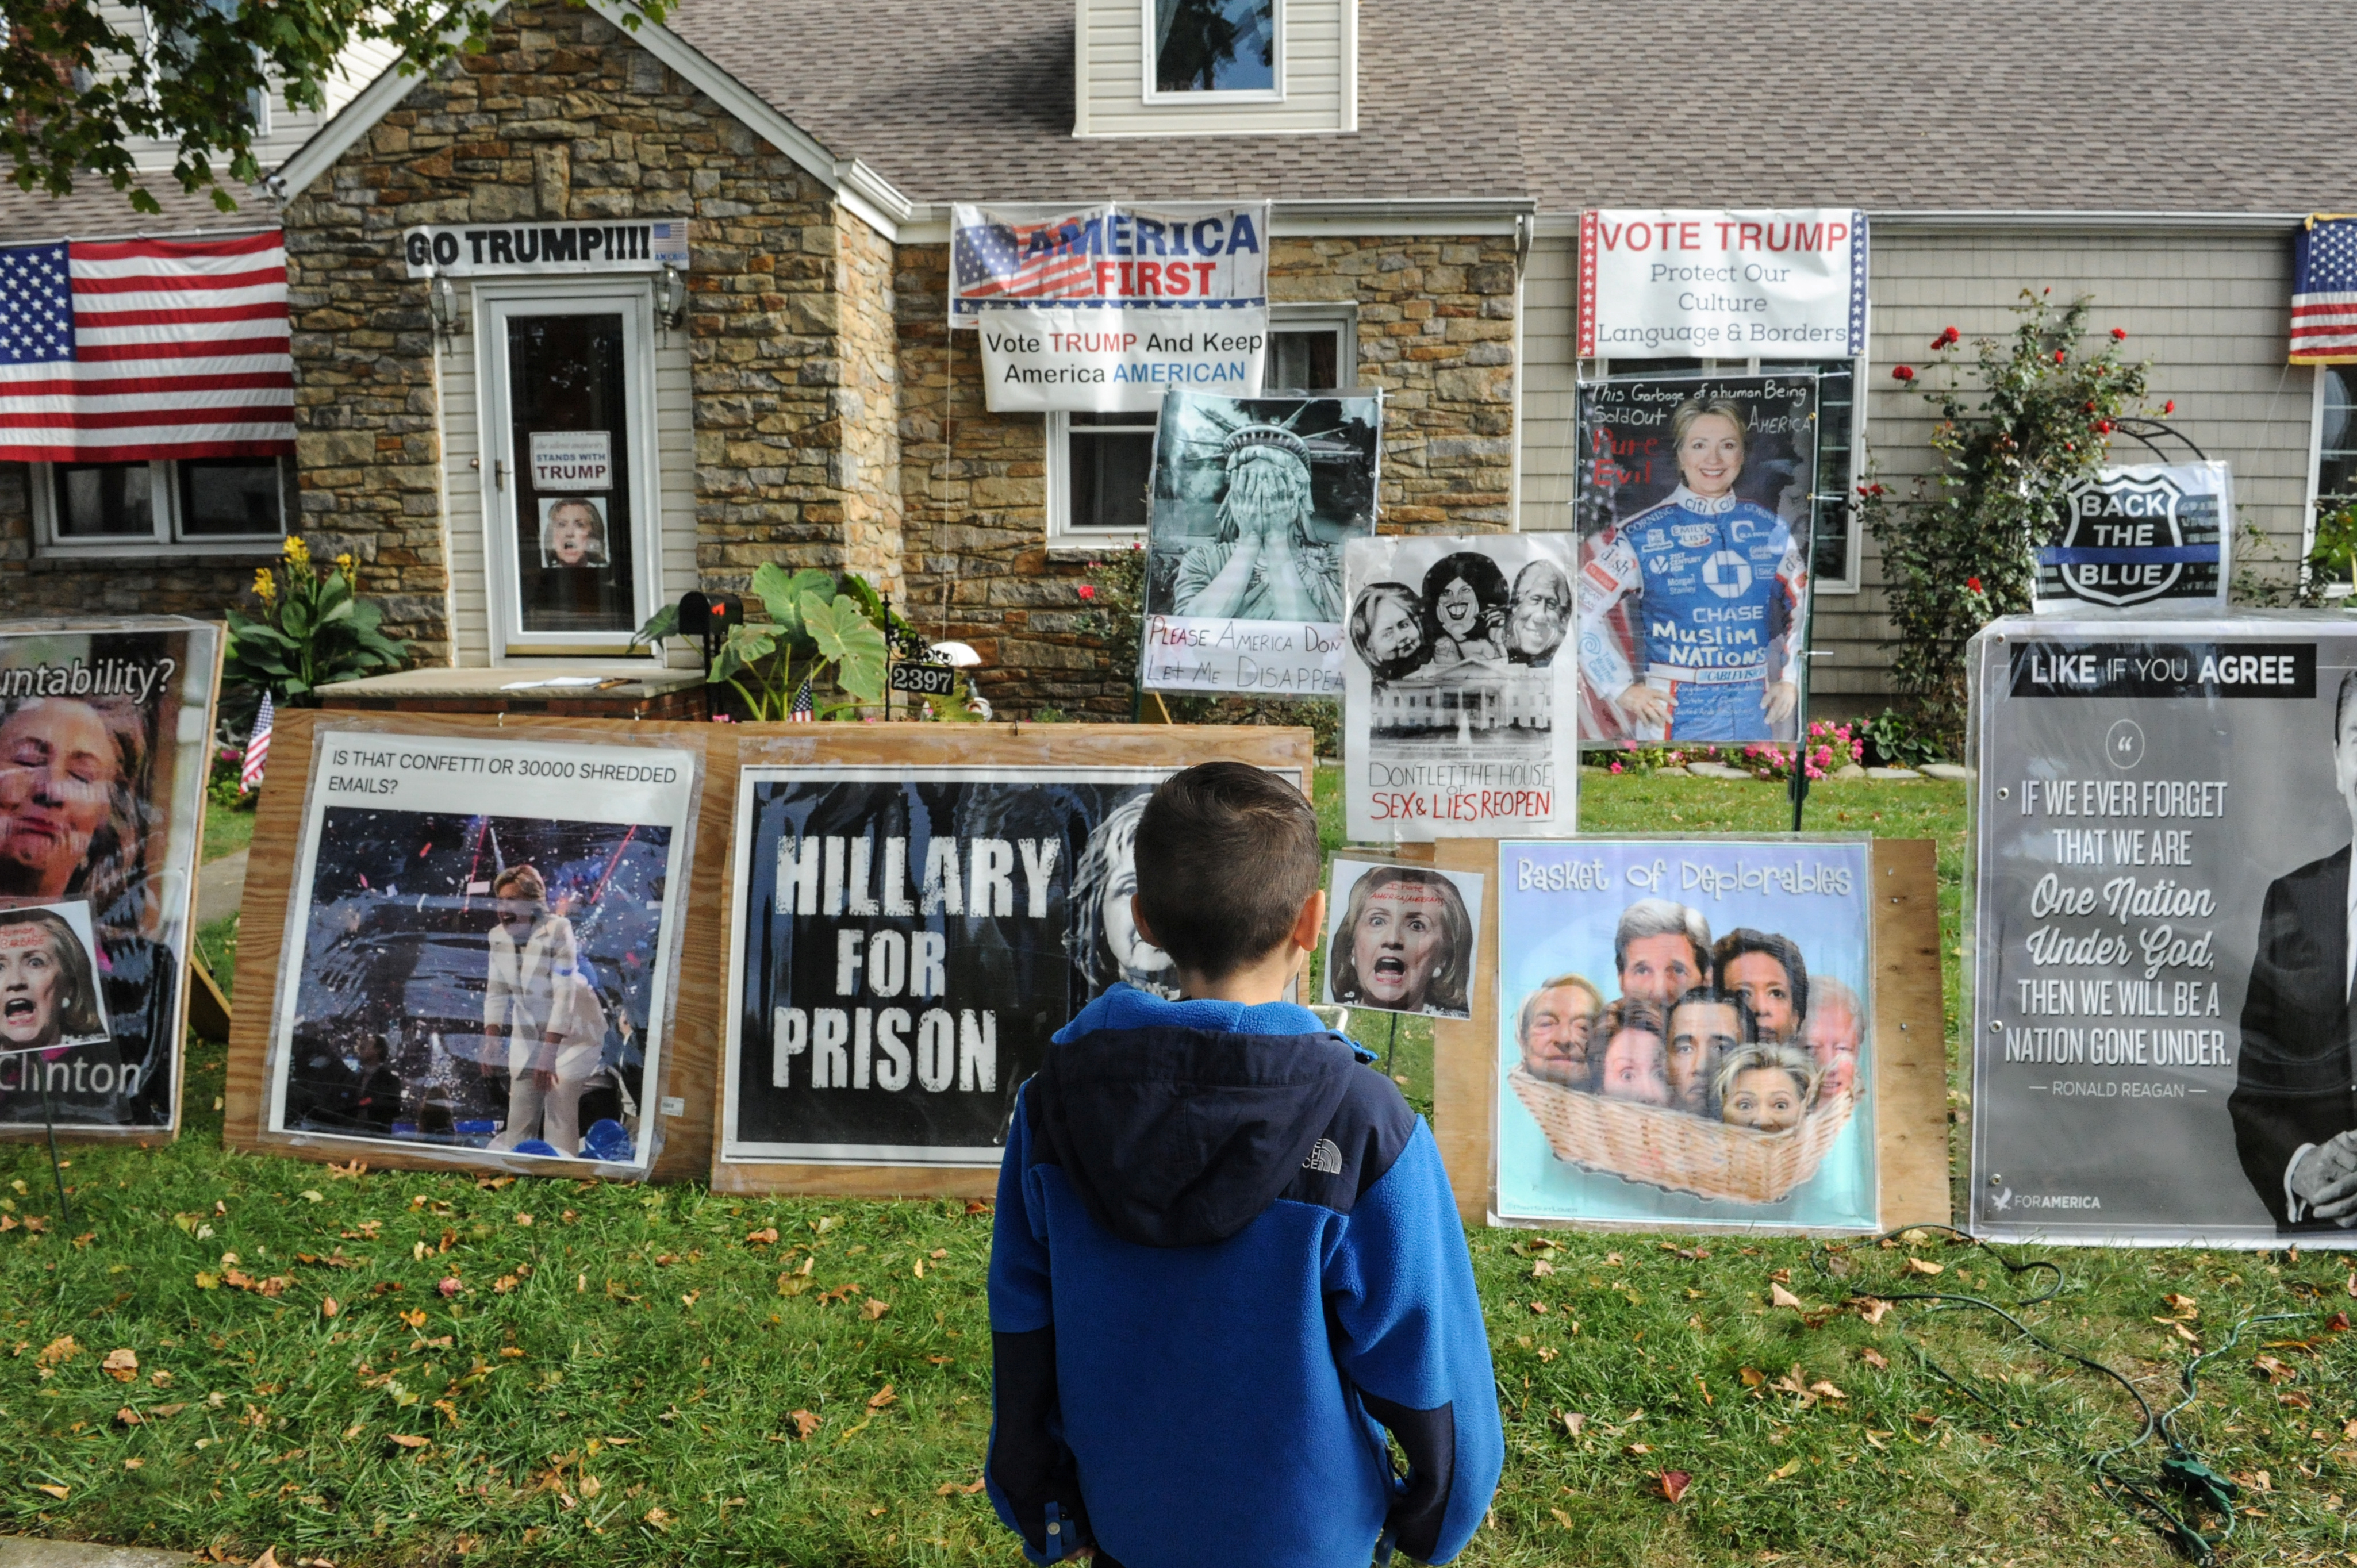 Dominick Vaglica, 7, looks at a home displaying signs supporting Donald Trump and criticizing Hillary Clinton in Bellmore, NY, on Oct. 29, 2016.